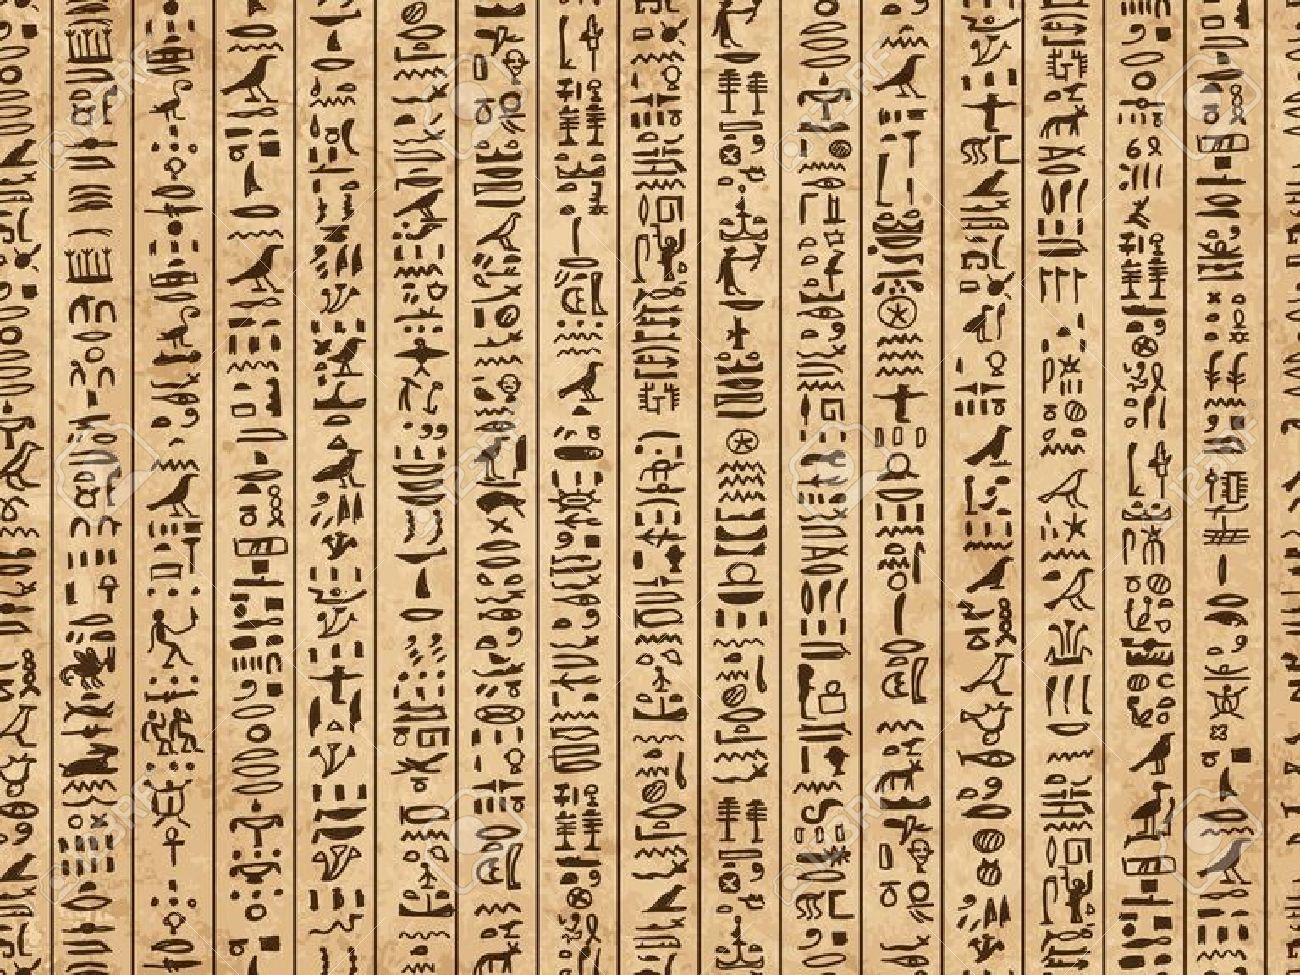 High Resolution Wallpaper | Hieroglyphs 1300x975 px